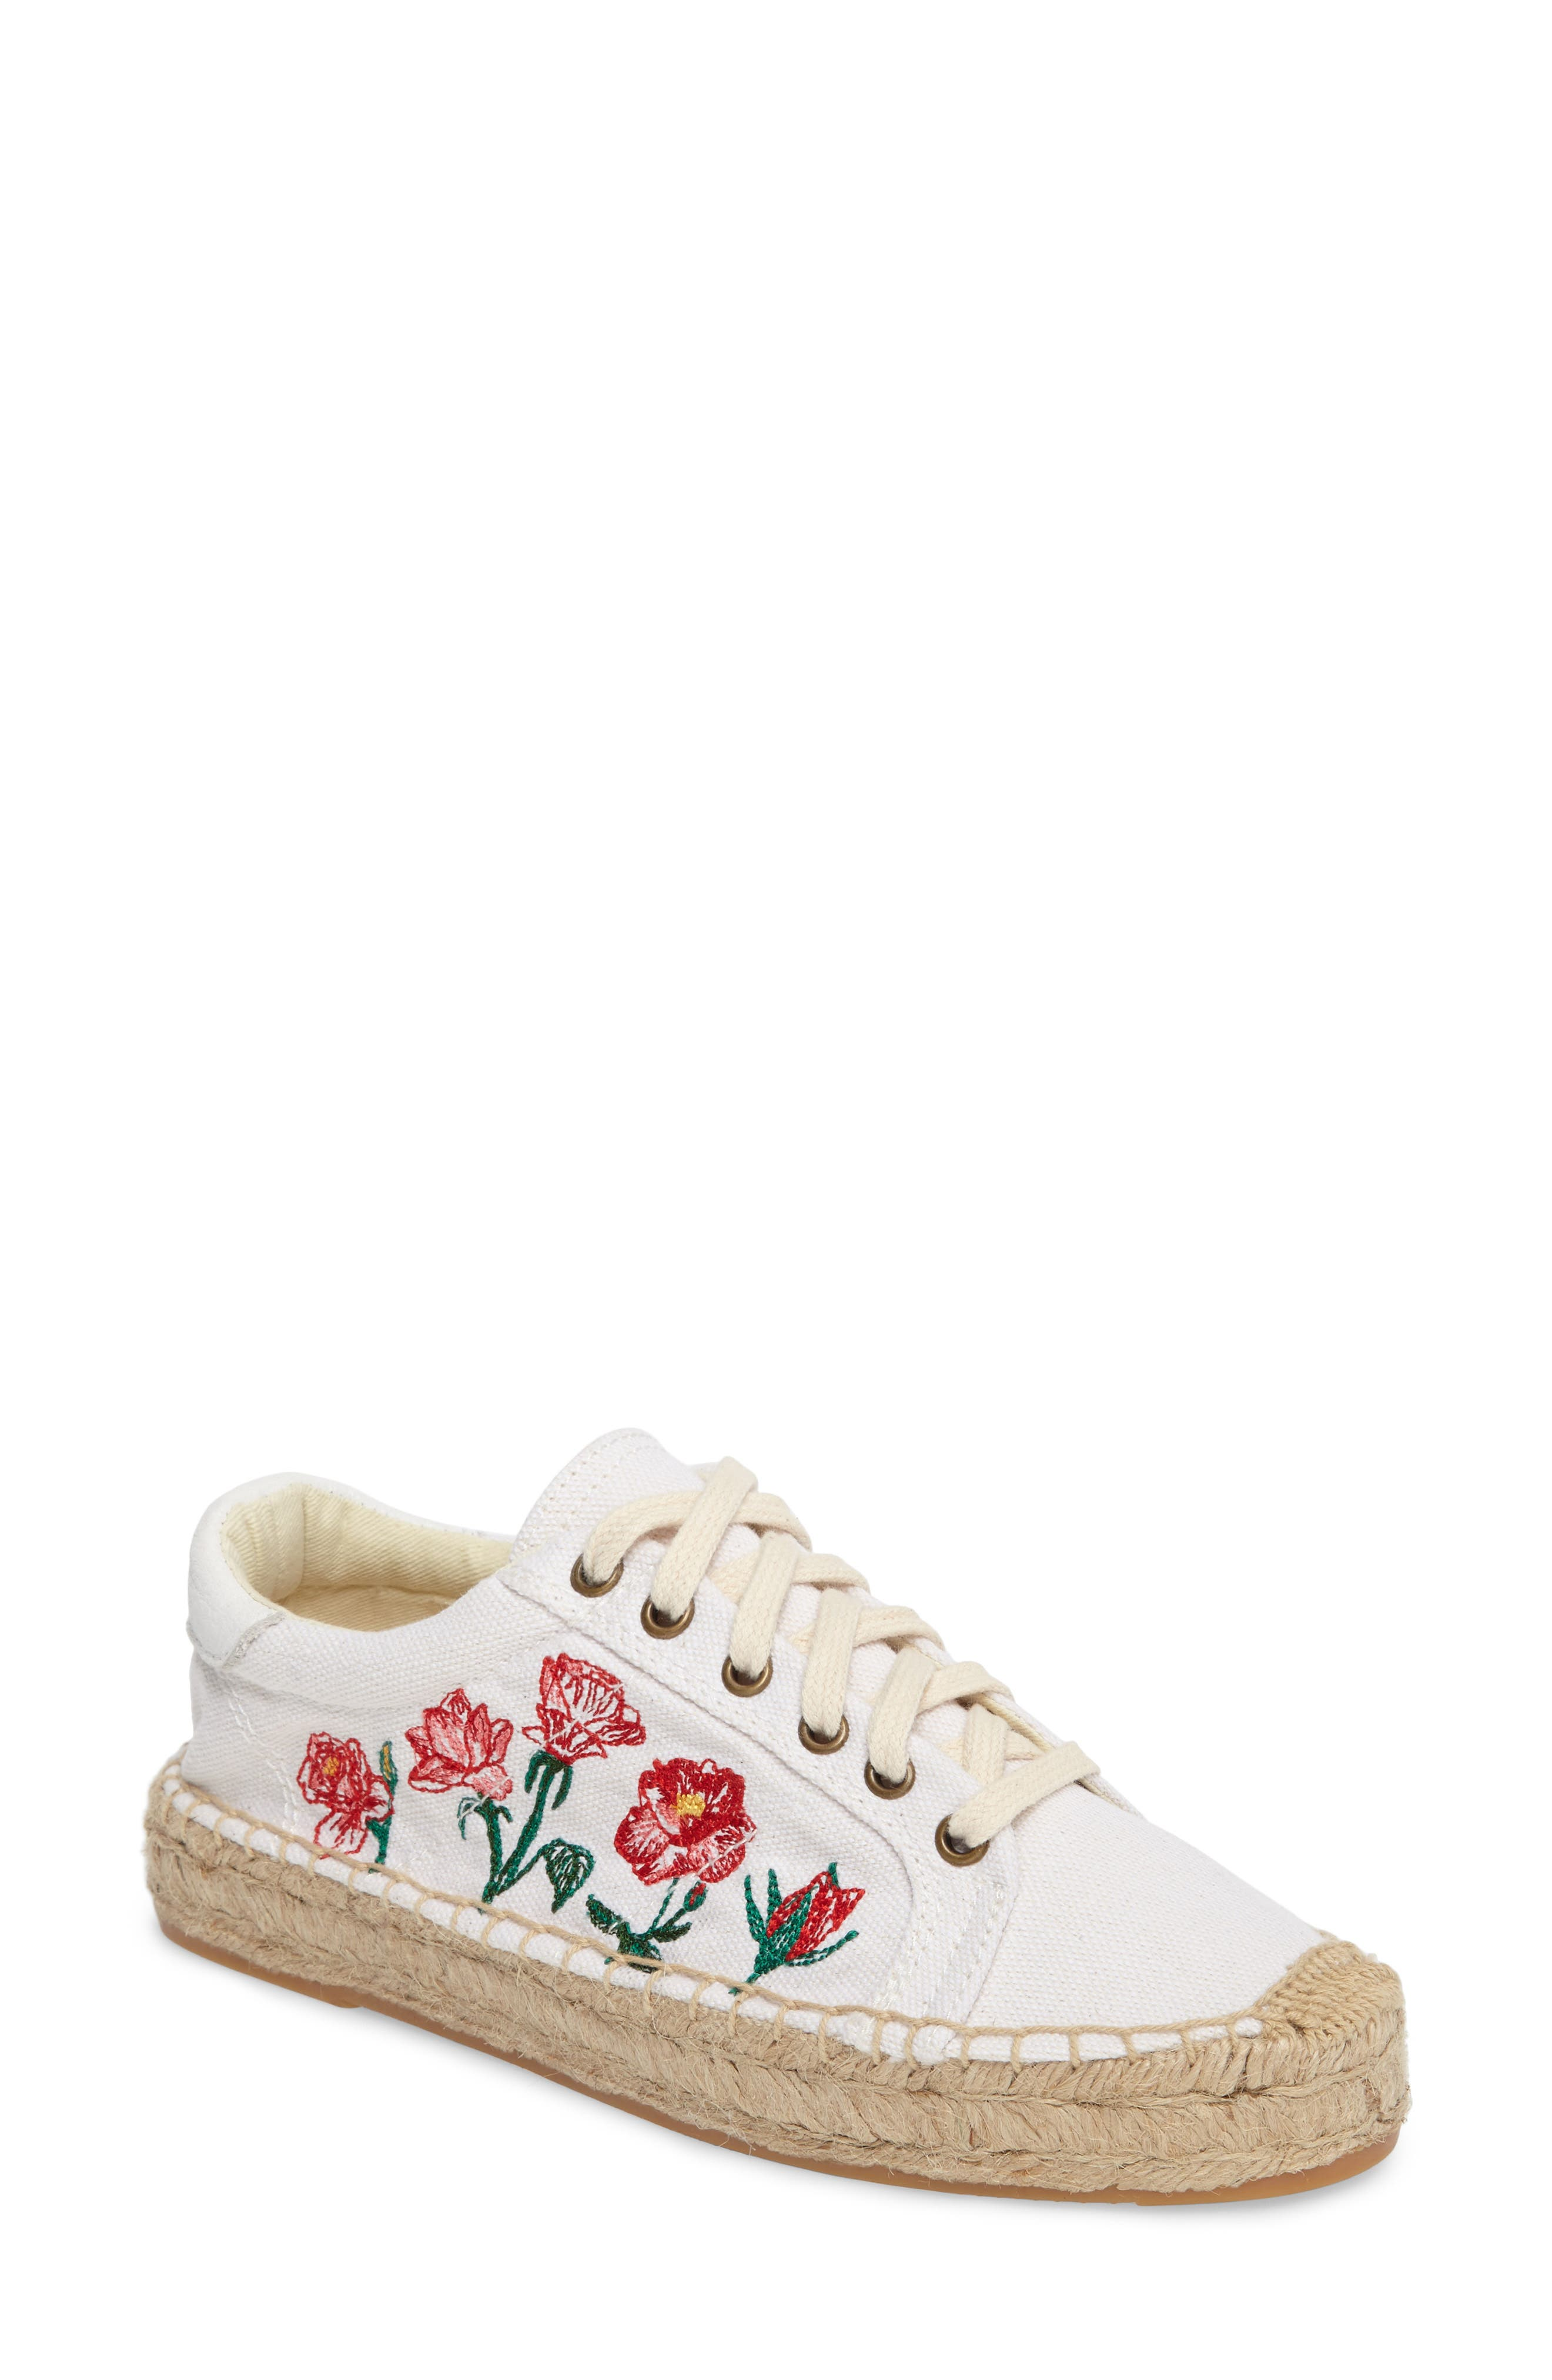 Floral Embroidered Espadrille Sneaker,                             Main thumbnail 1, color,                             White Canvas